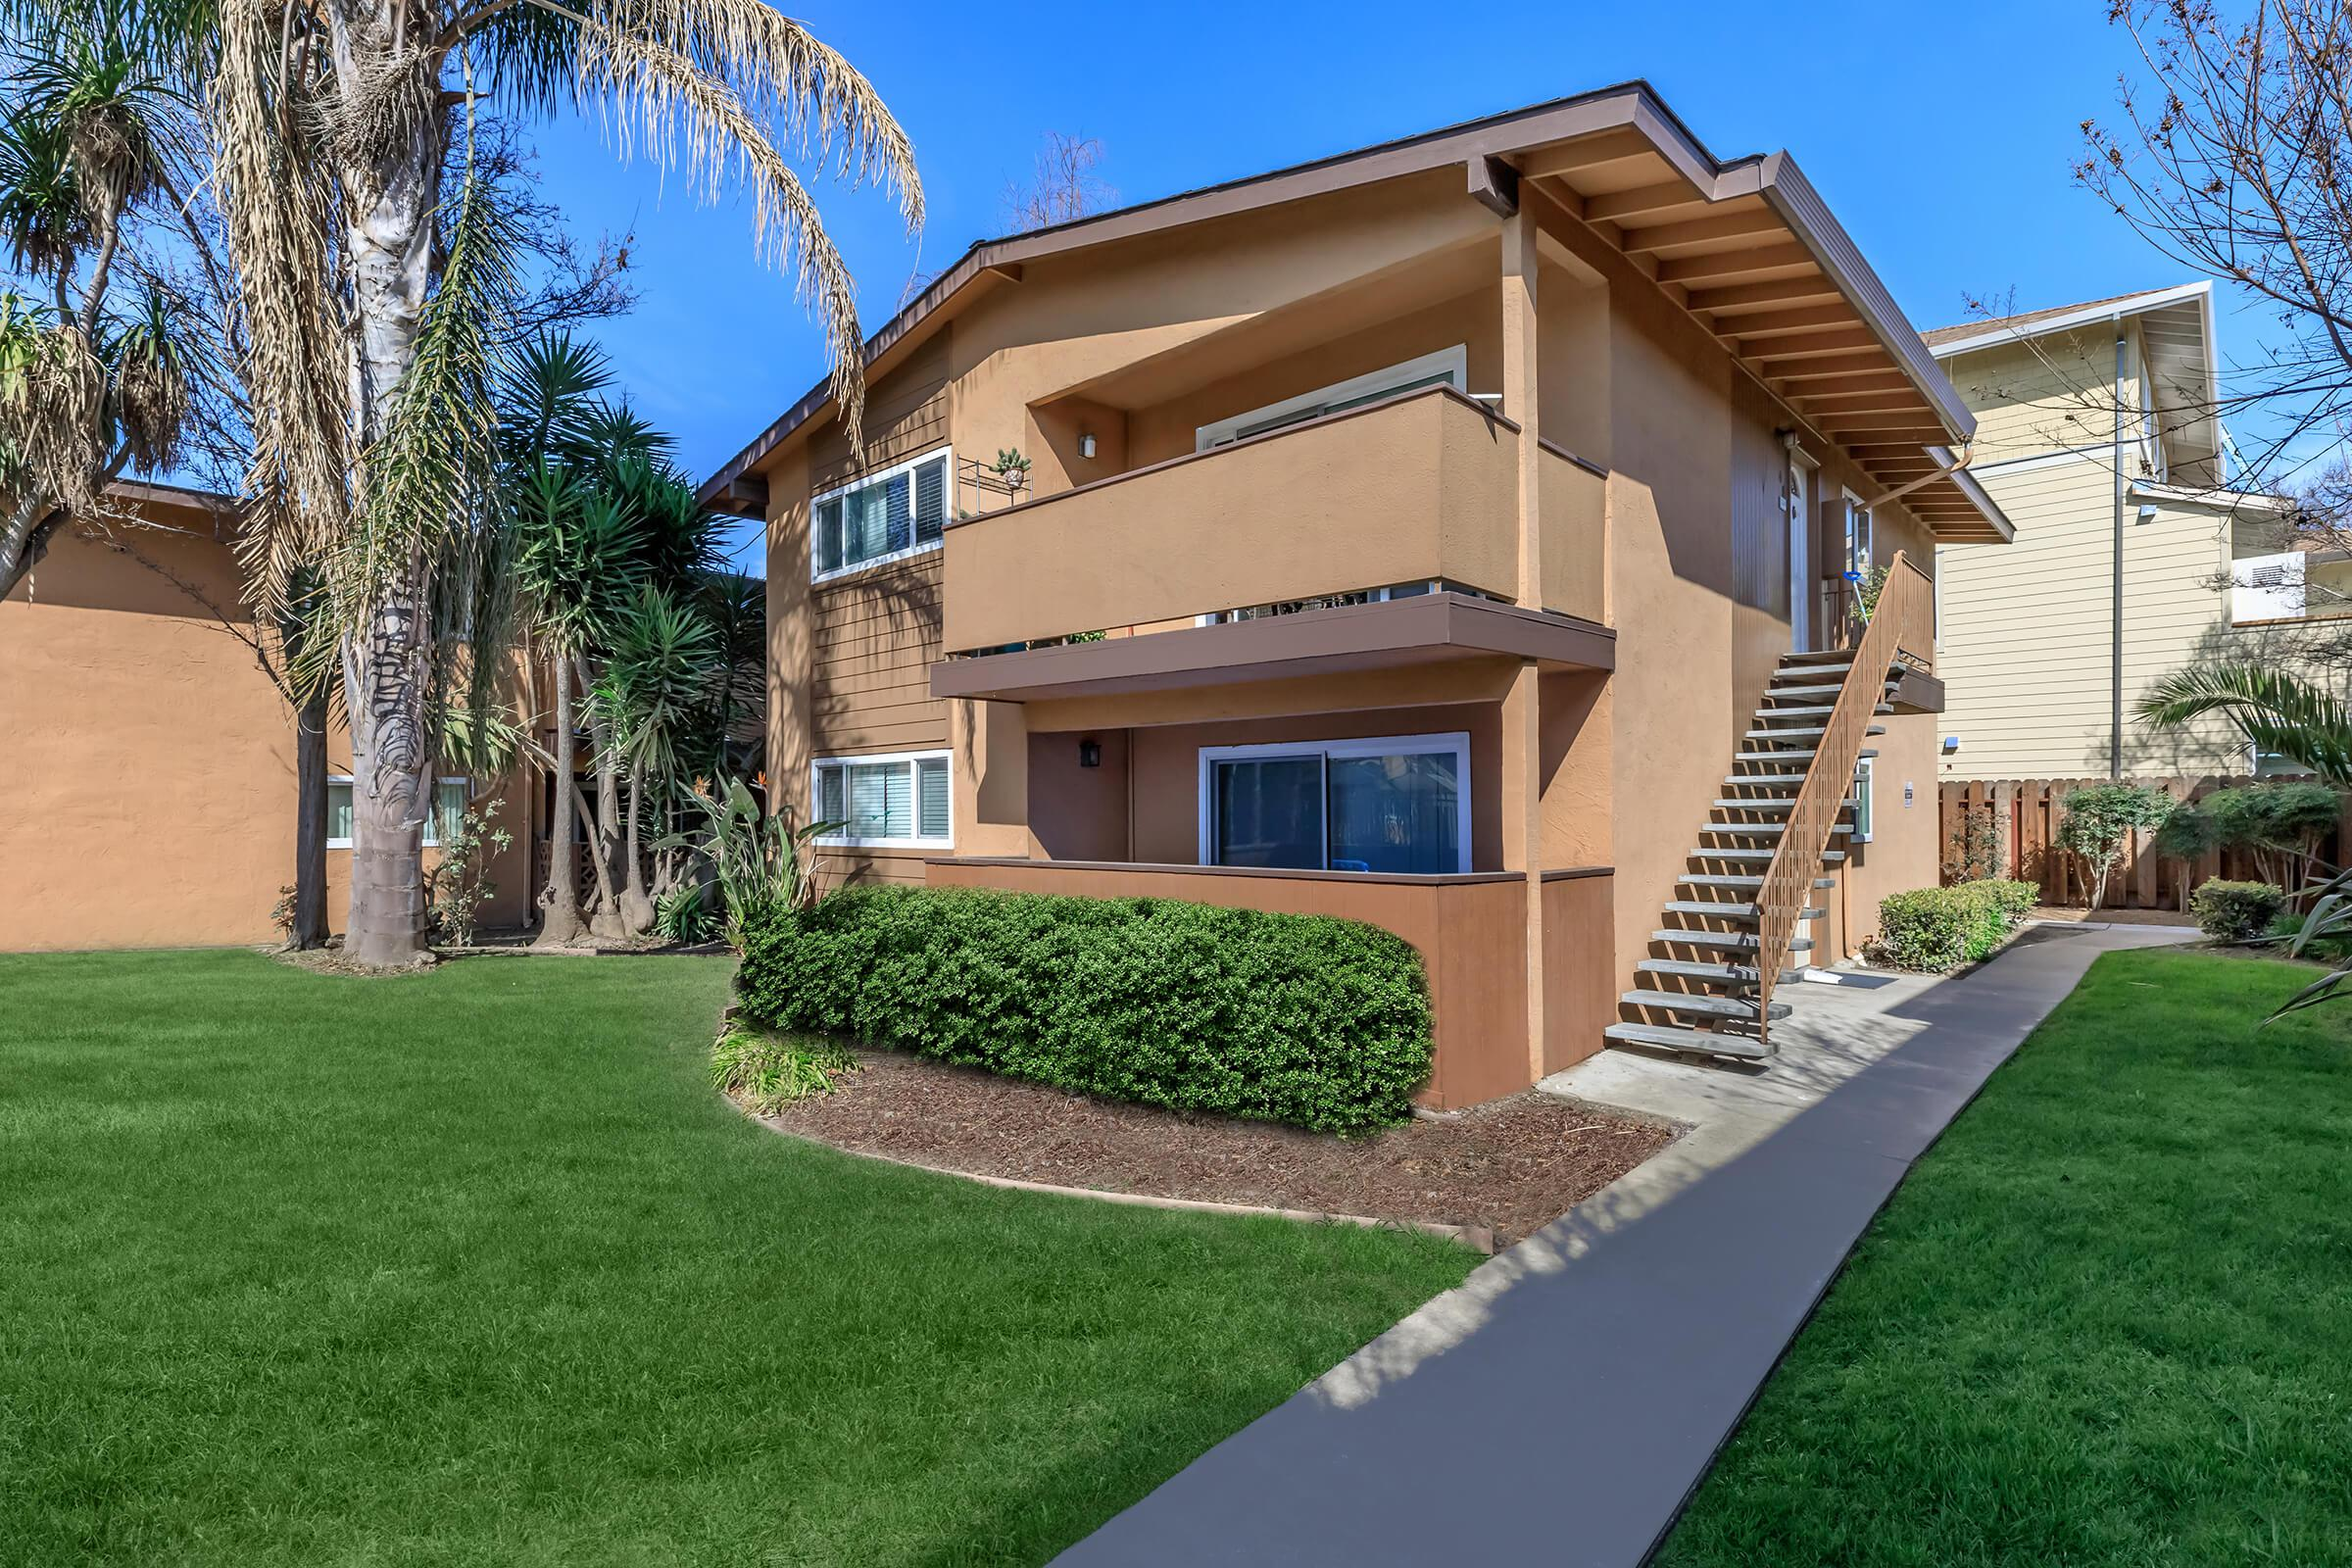 Landscaping at Ladera Woodsin Fremont CA